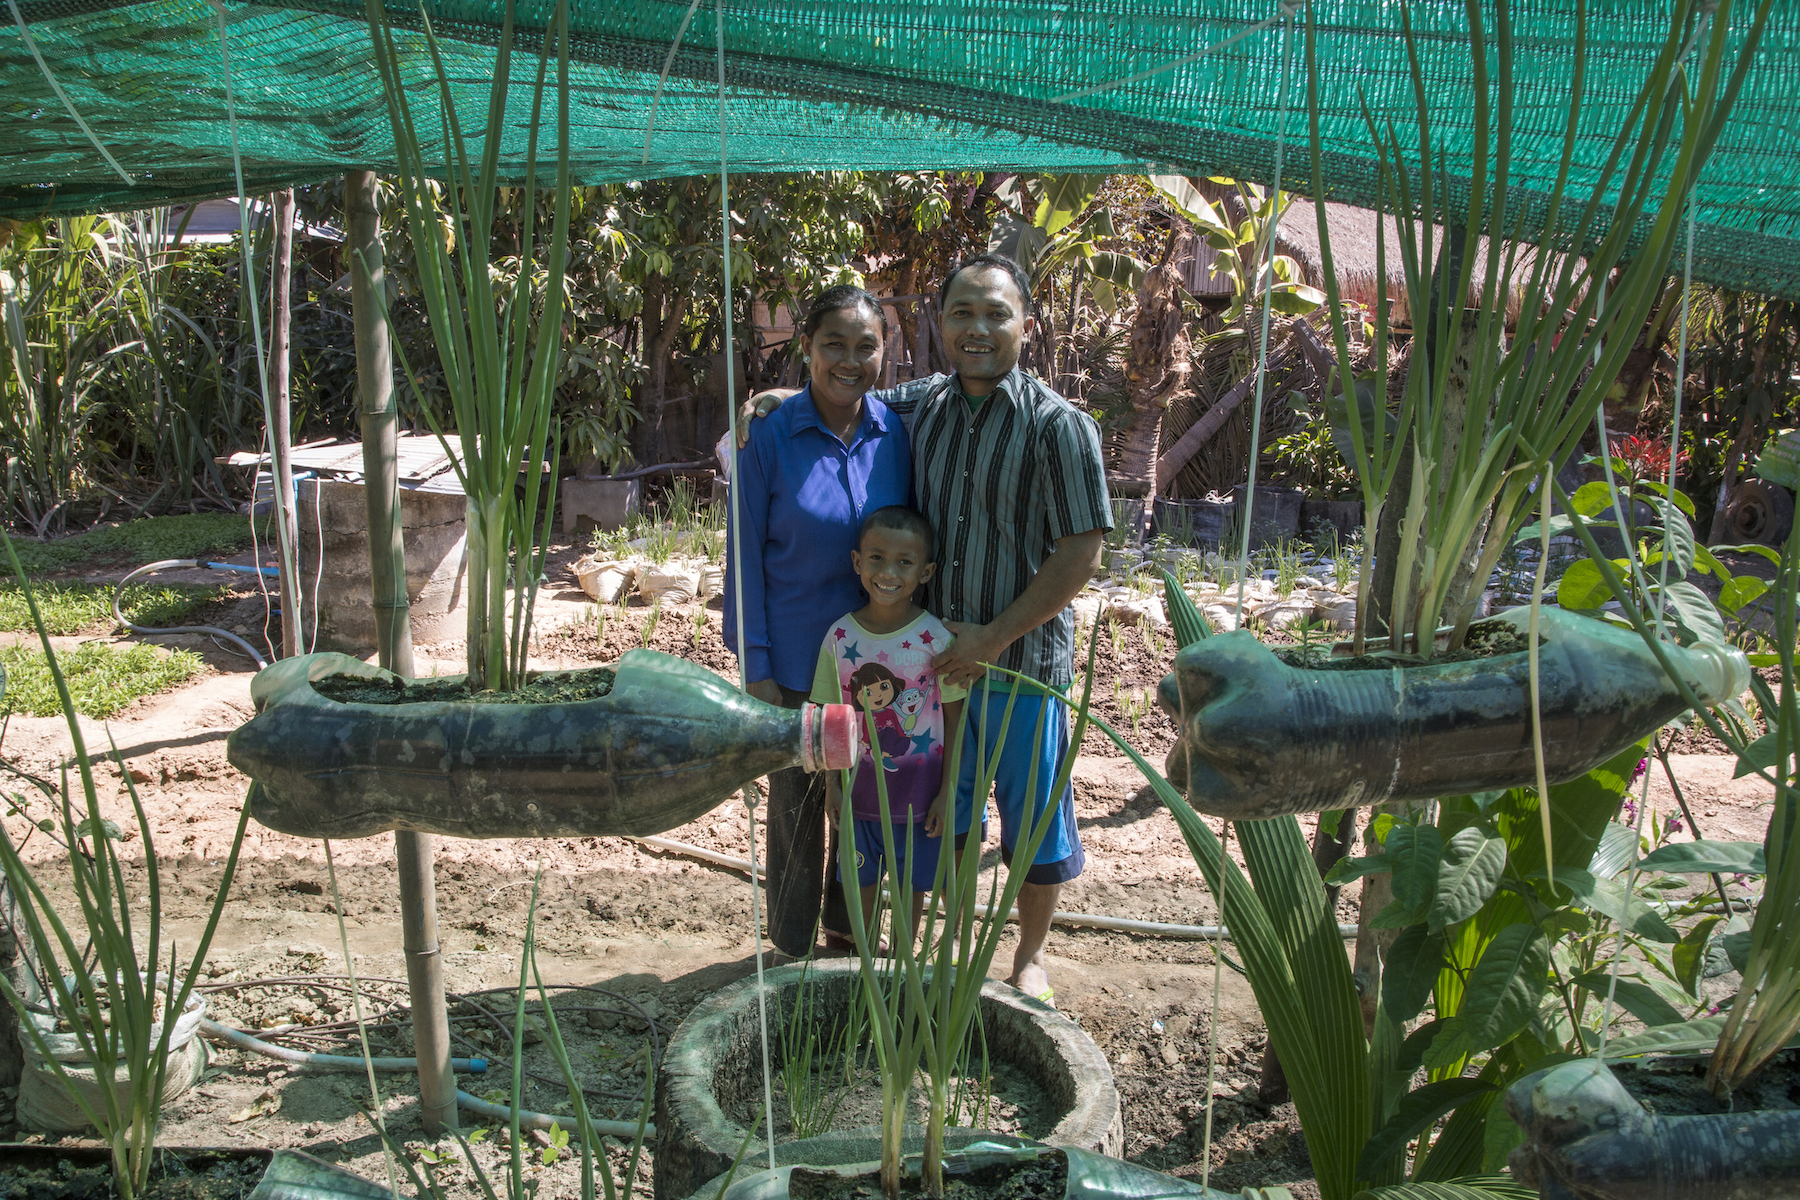 Klang Savuth, Kid Moa and Ky Damkoeung, their youngest of two sons, stand in front of their garden in Kok Komeat, Cambodia. Photo by Omar Havana.